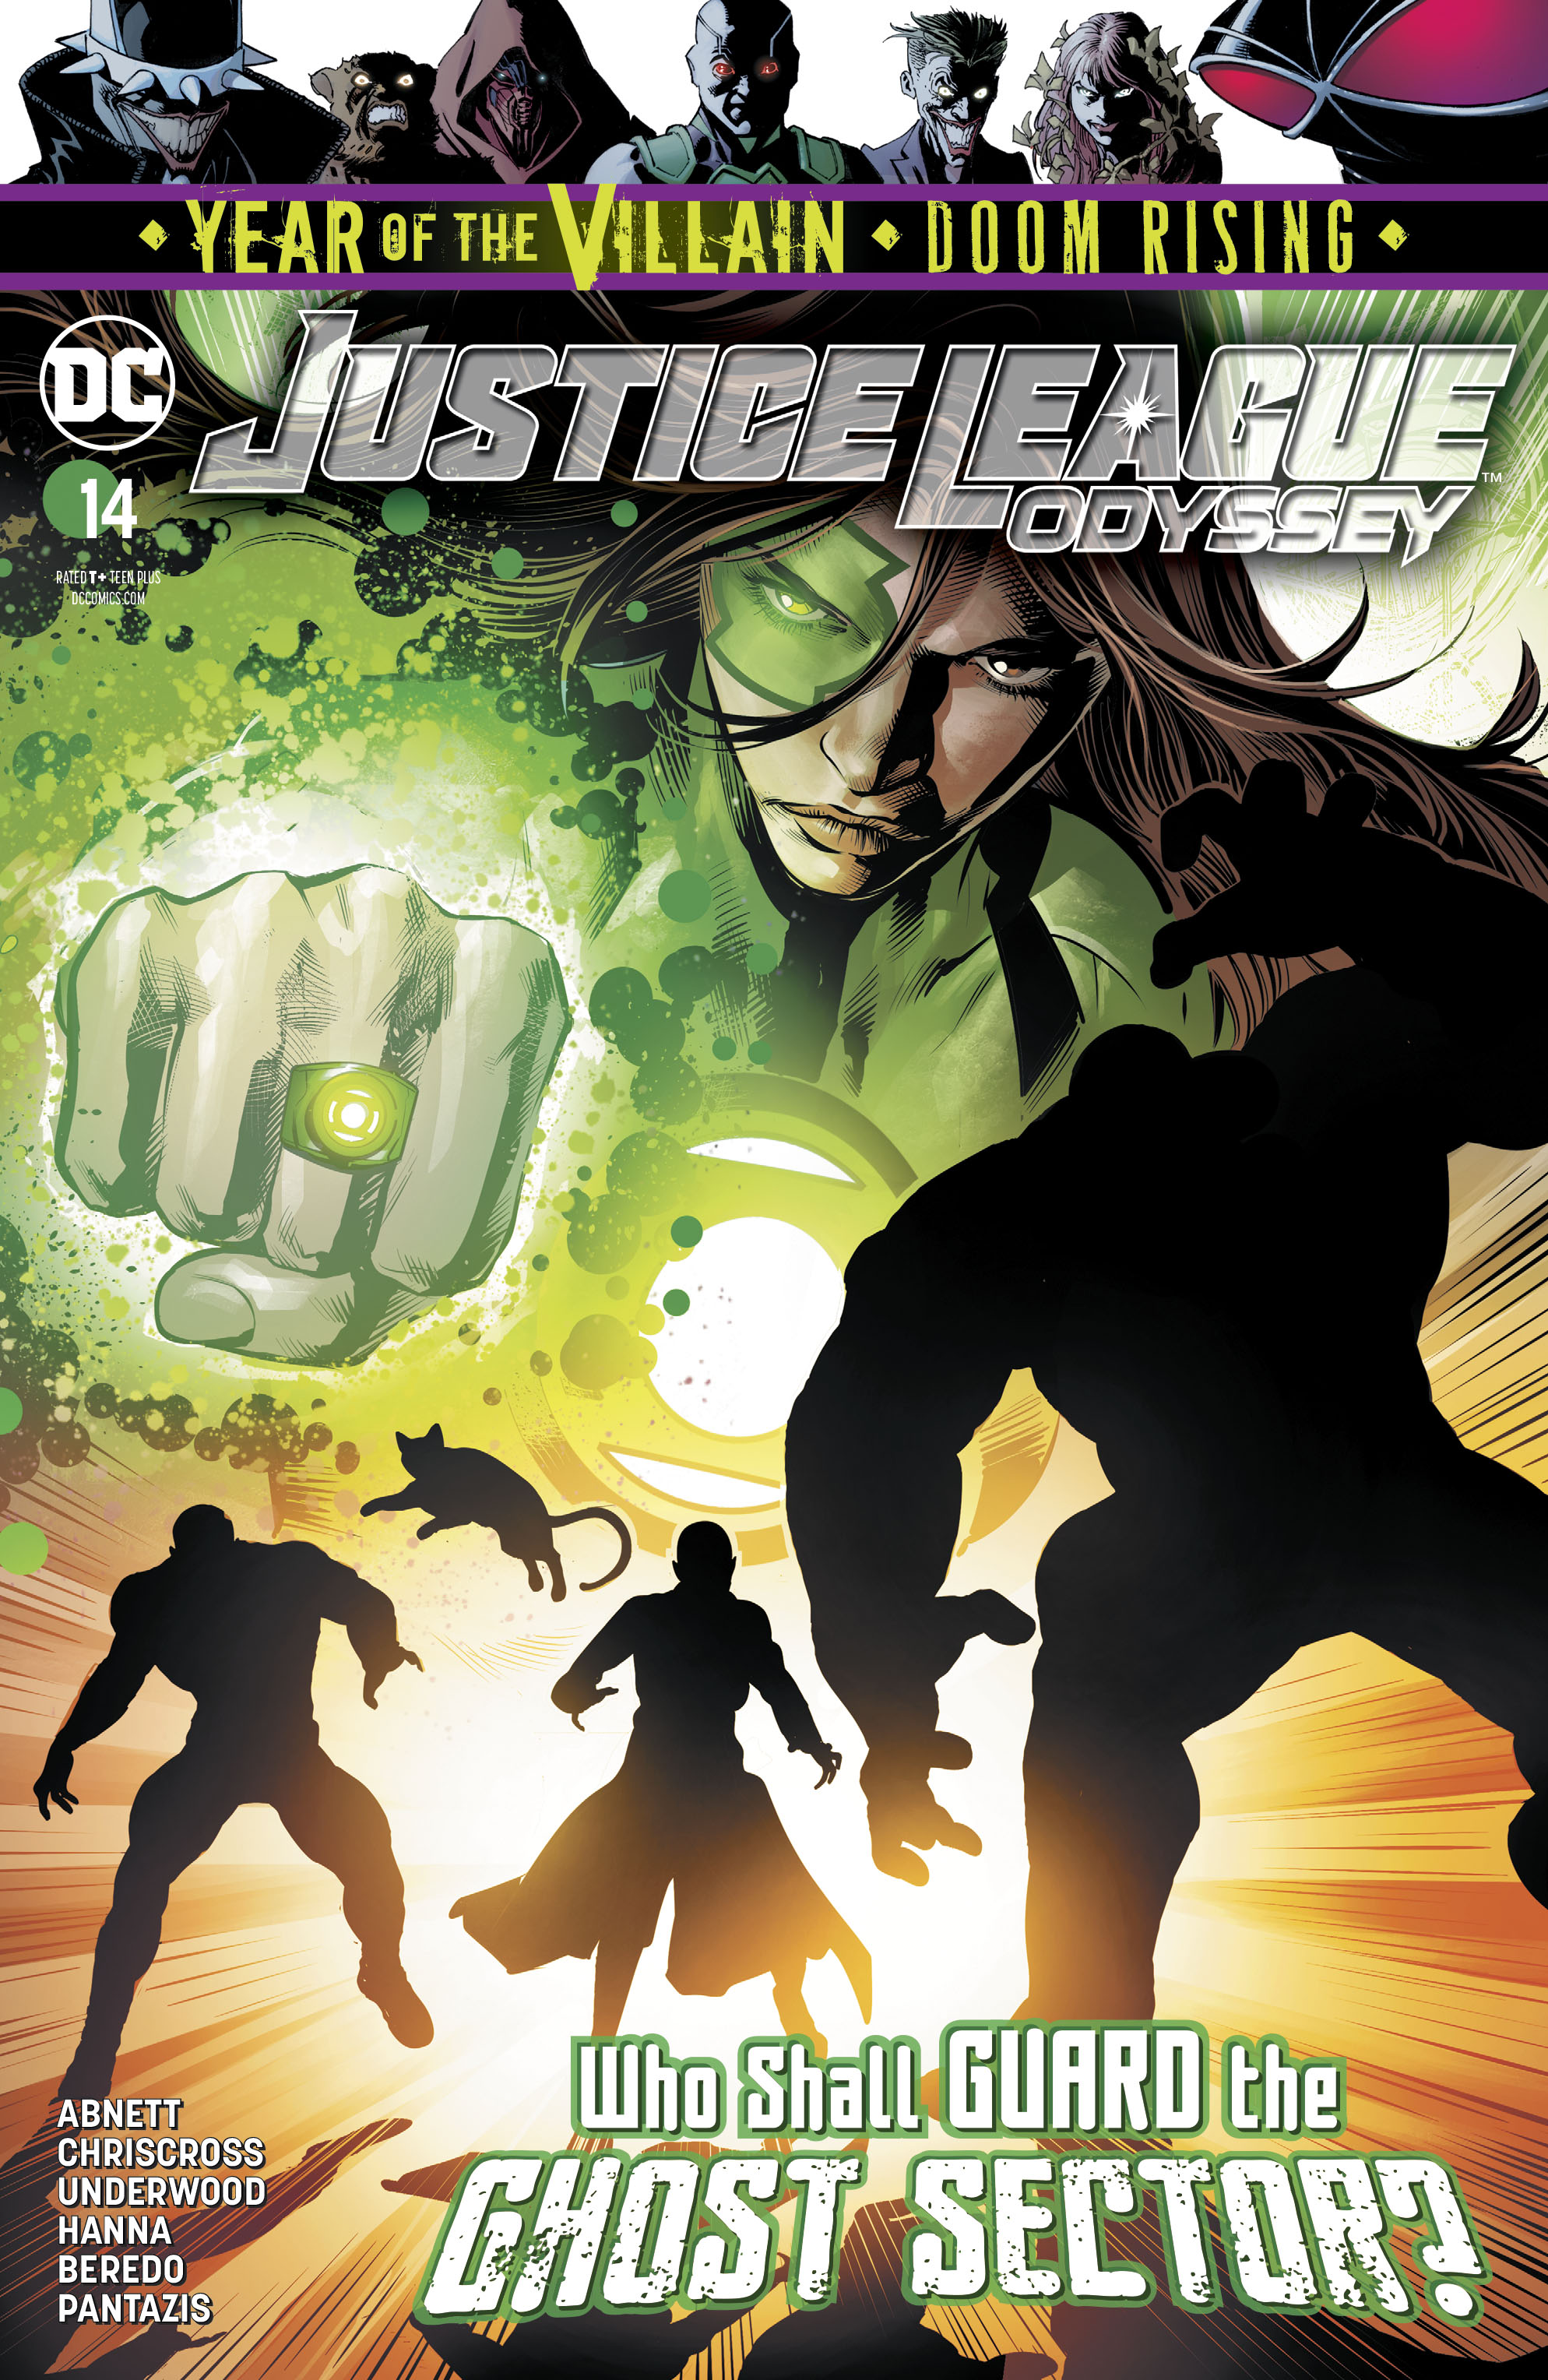 Justice League Odyssey Vol 1 14